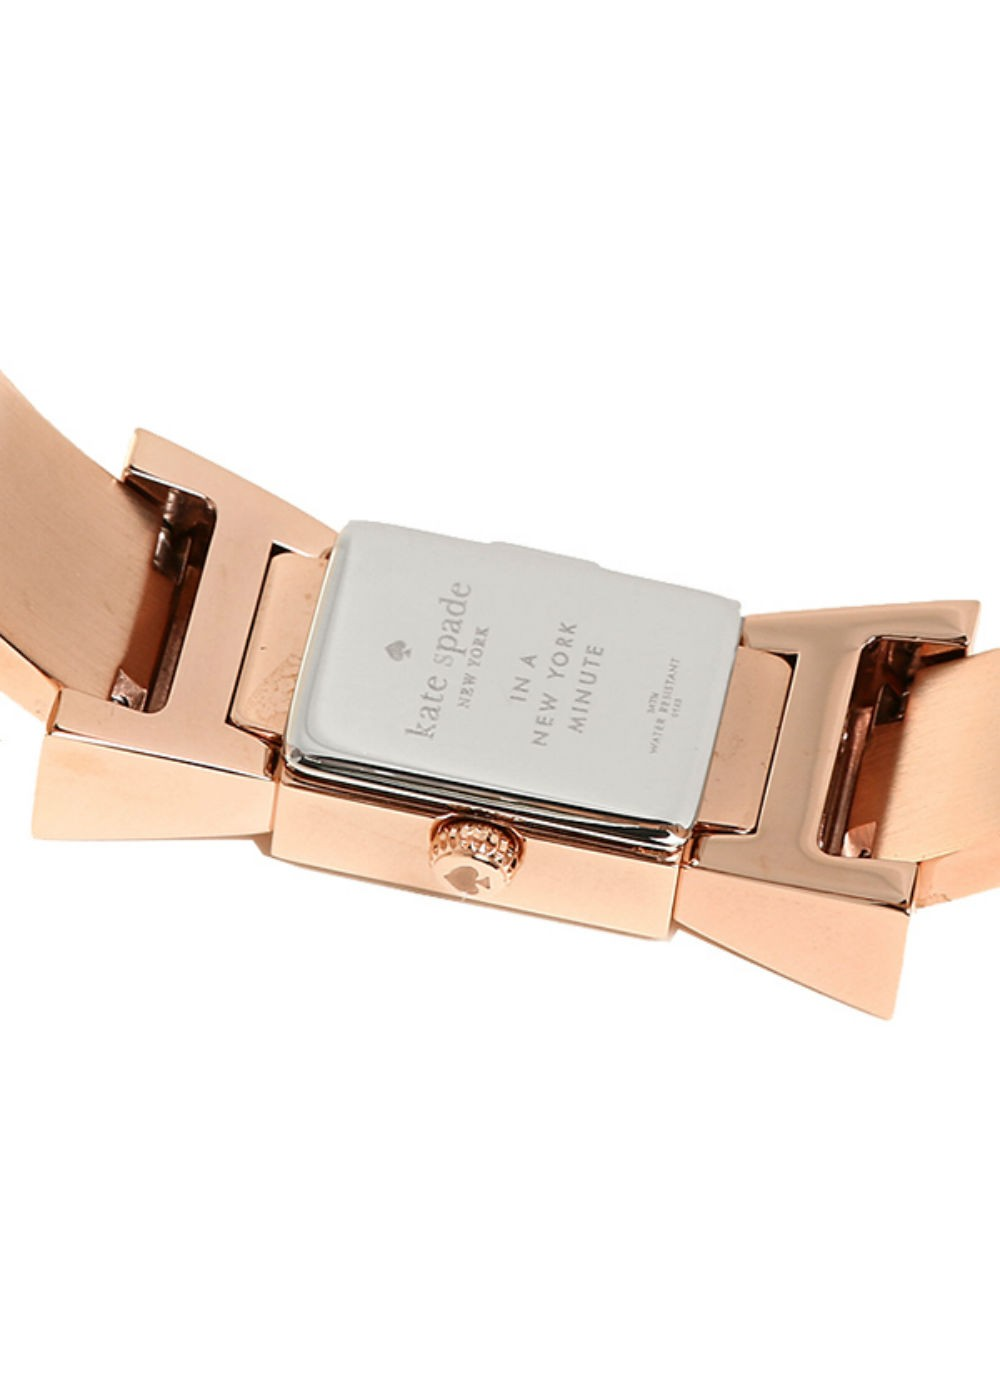 【kate spade new york】腕時計|ピンクゴールド|腕時計|kate spade new york (C)|最大39%OFF